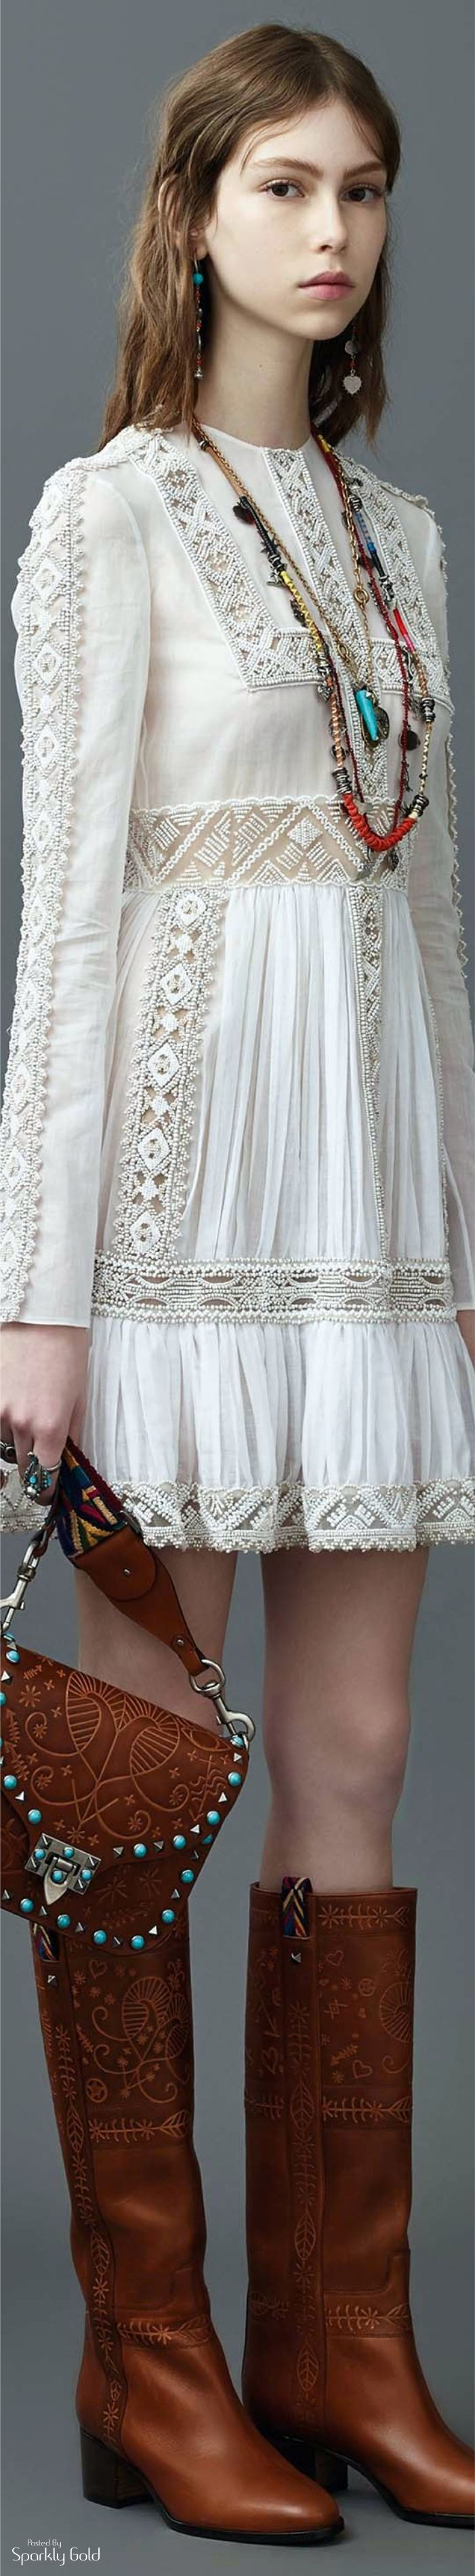 Valentino R-17: boho white dress, necklace, boots.